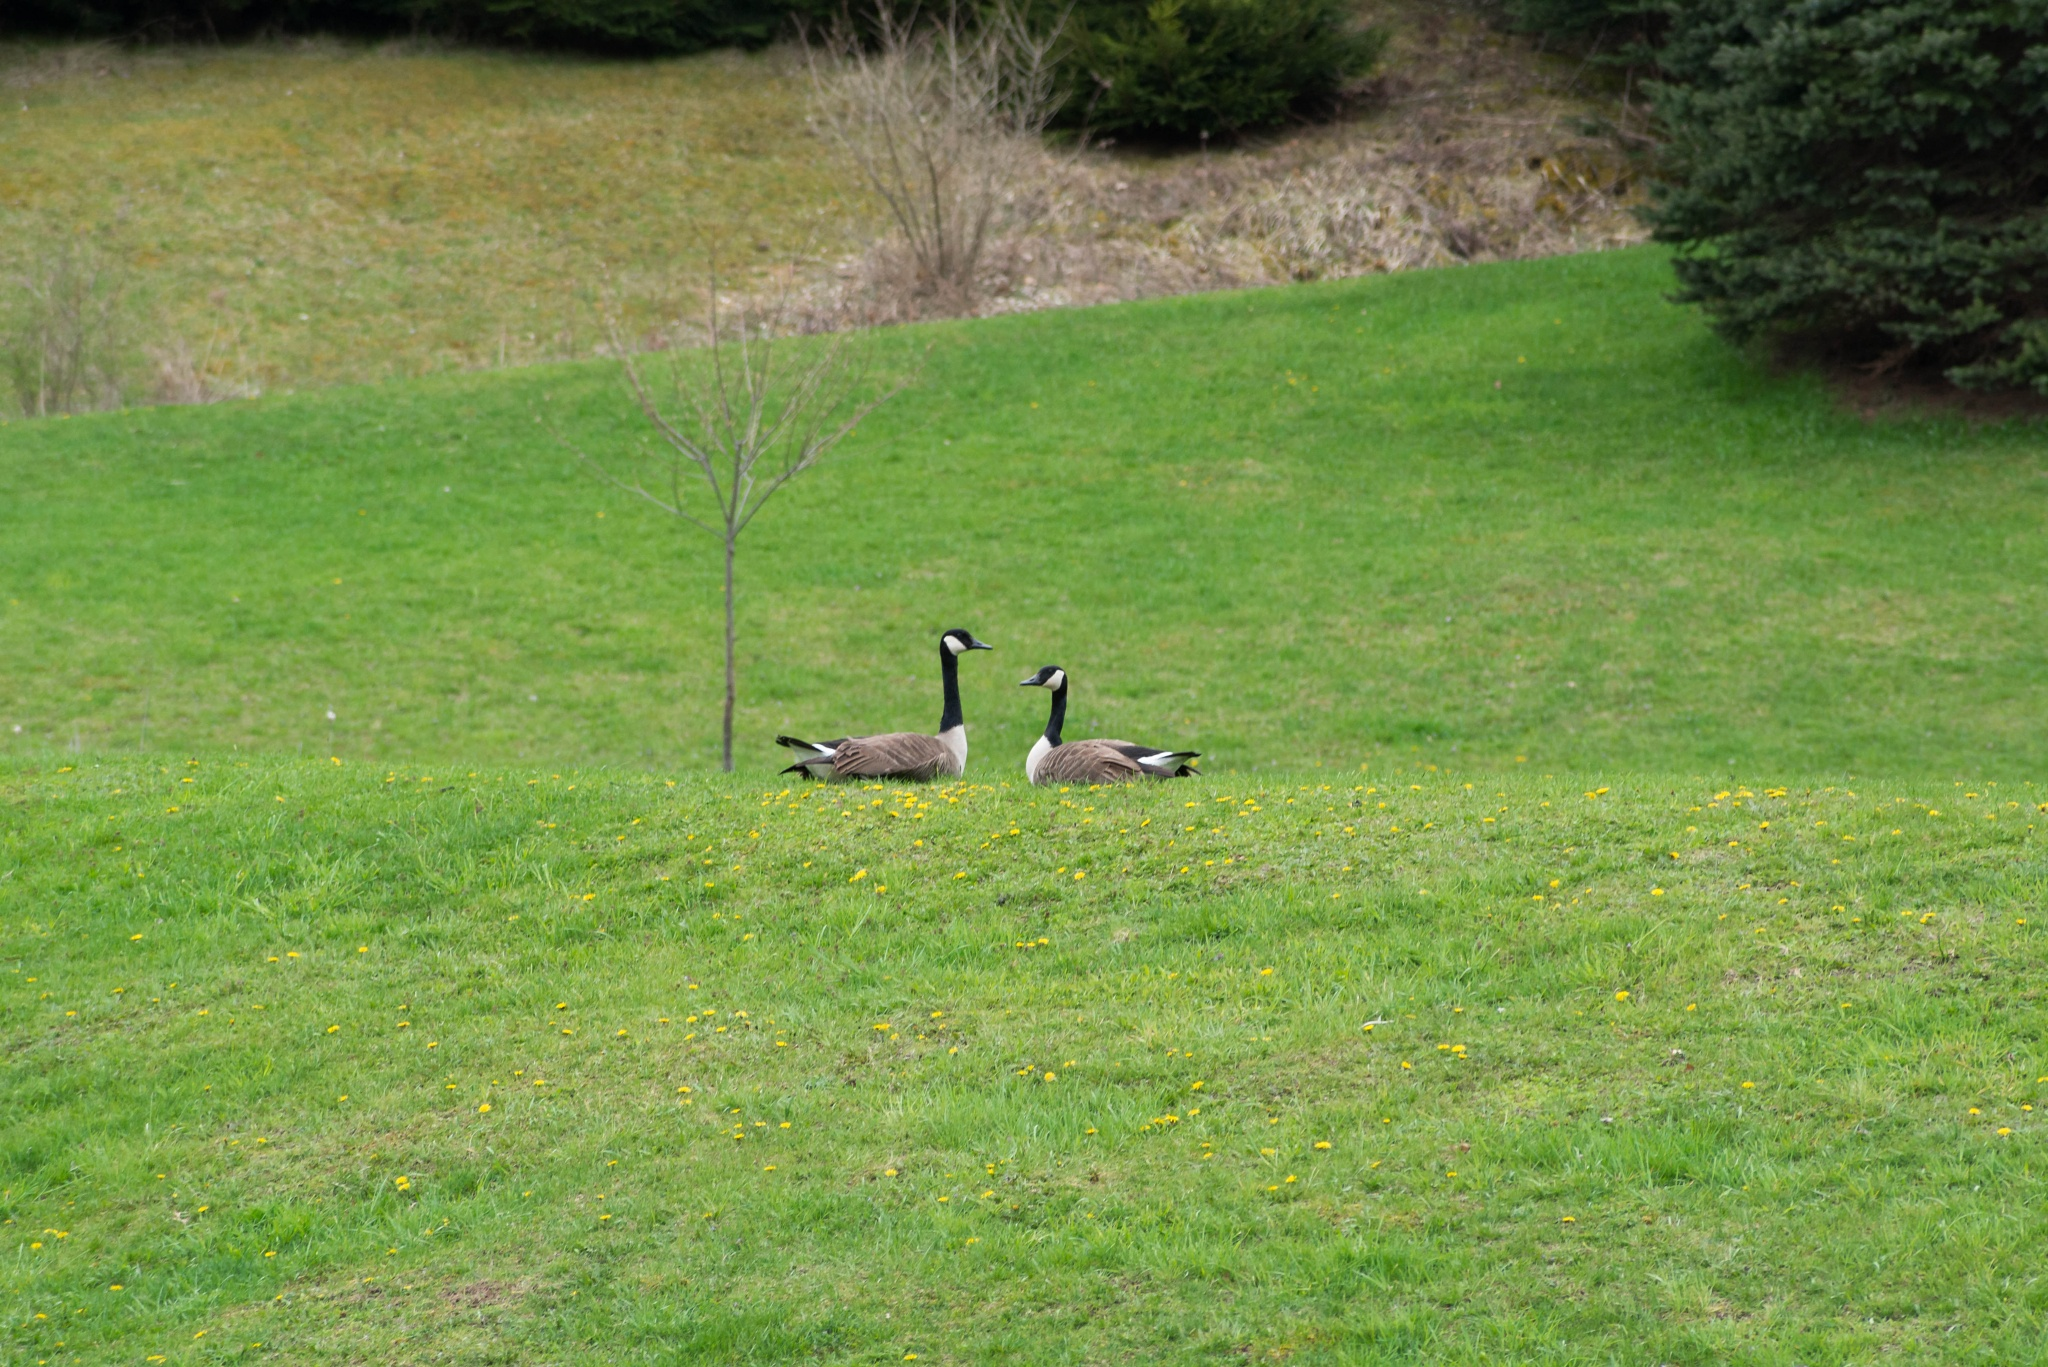 geese by guitarplayer2571